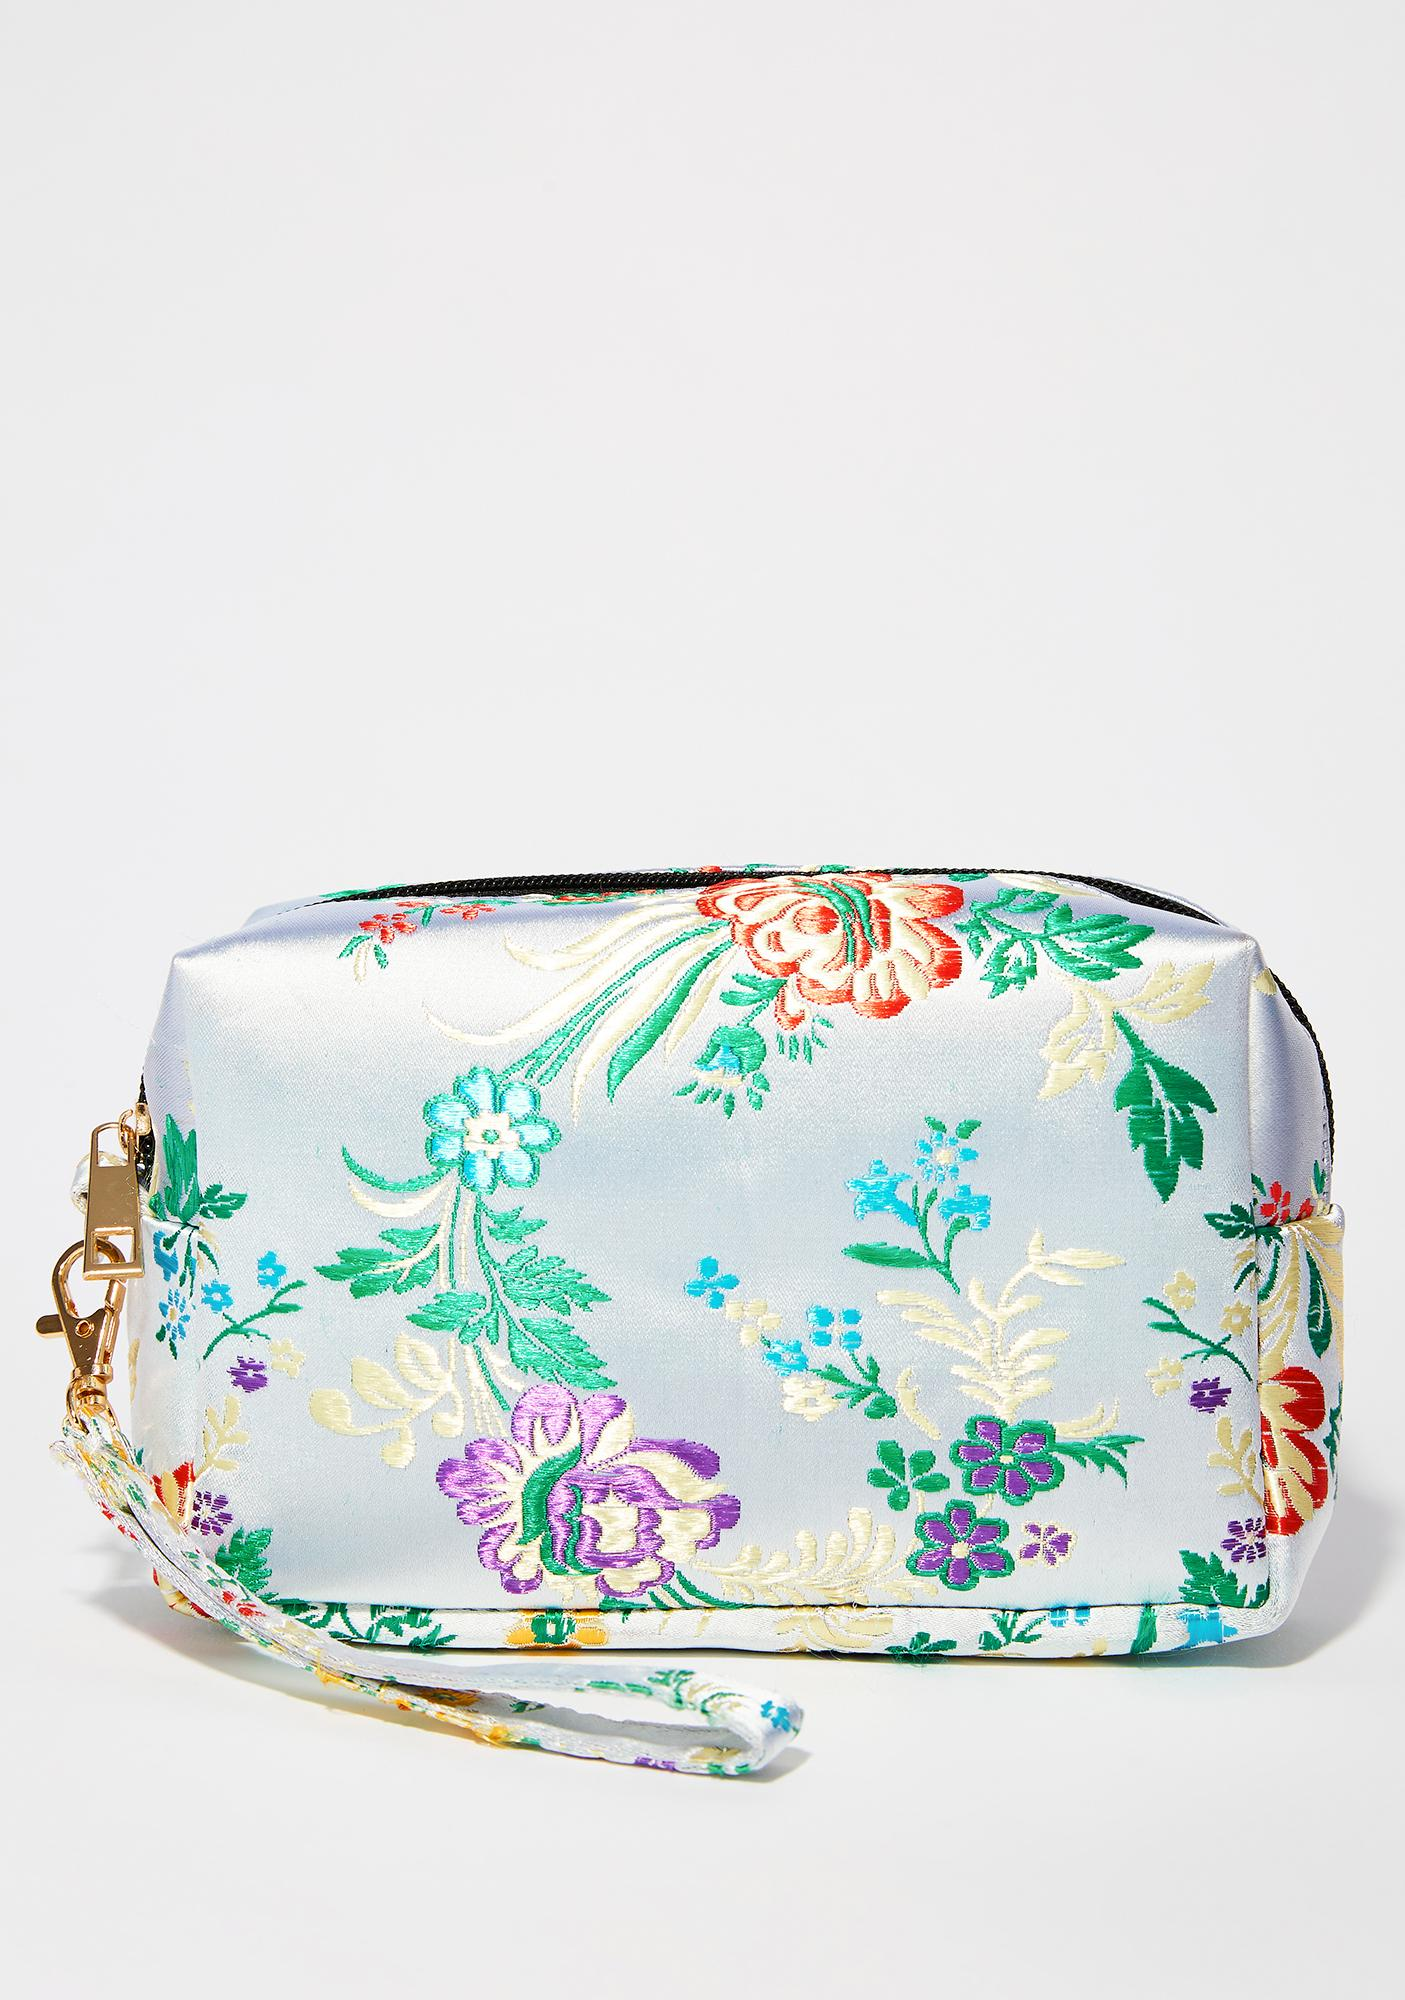 High Tea Time Wristlet